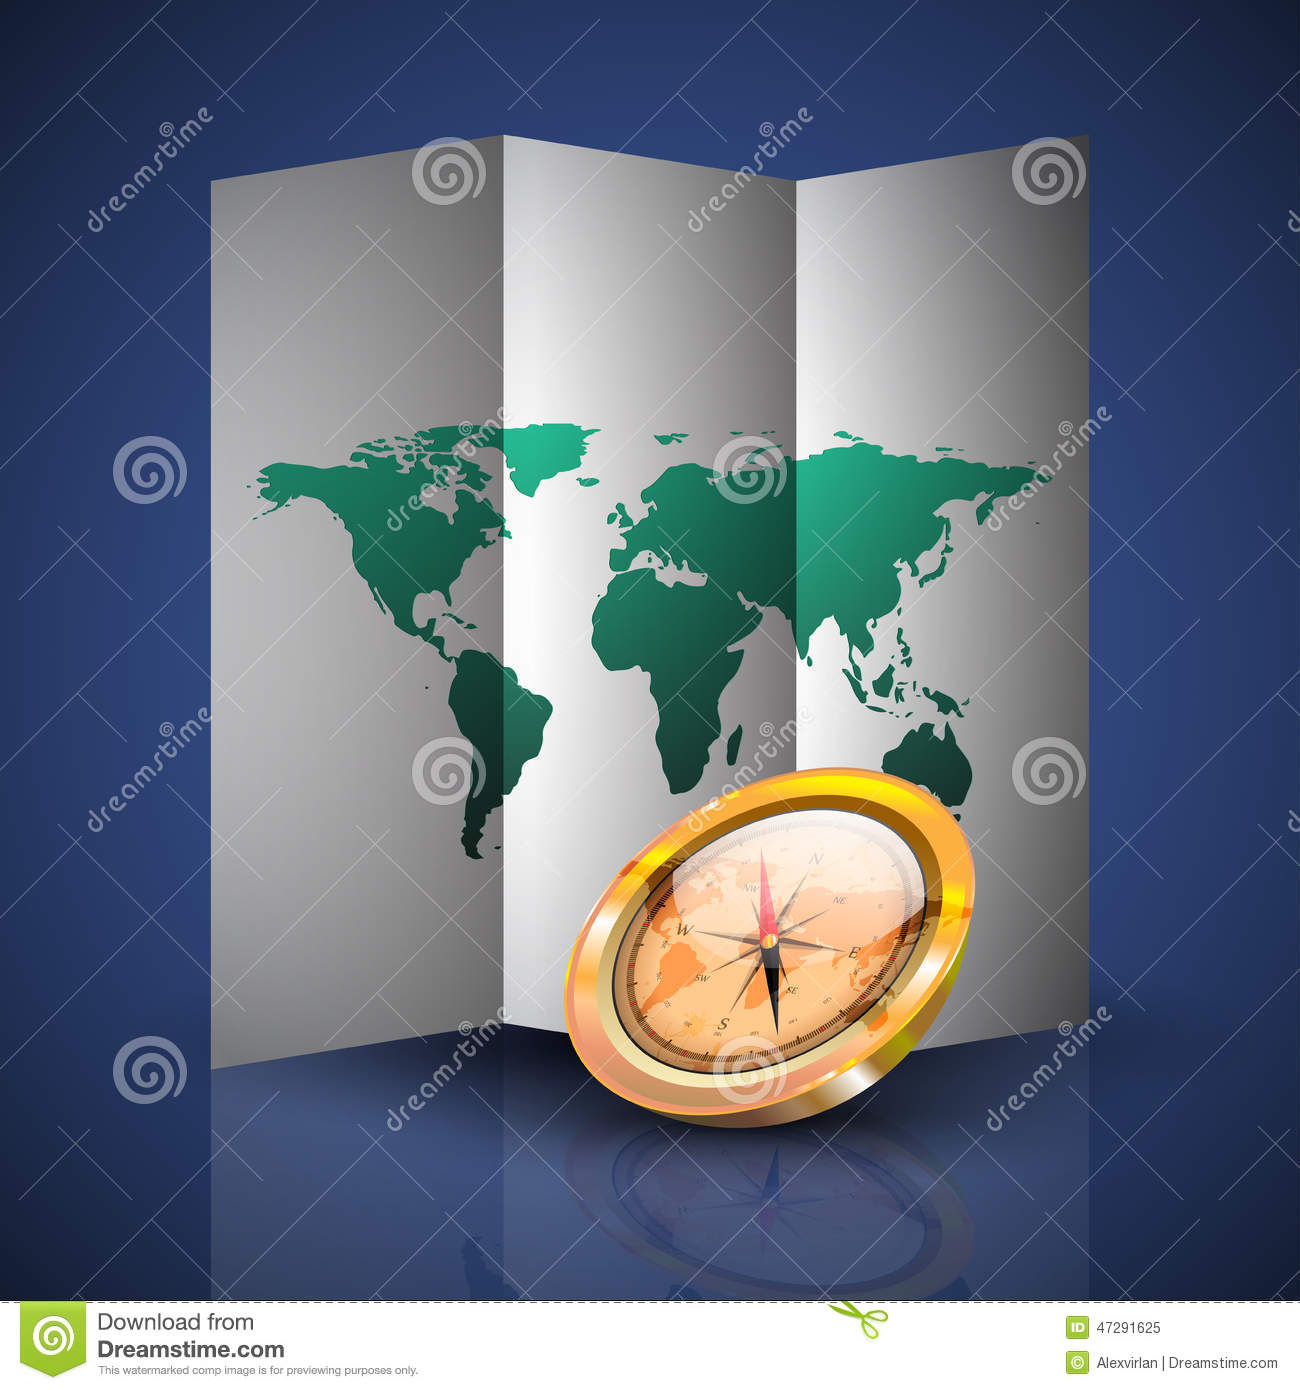 Terra Earth Map.Folded World Map With Compass Stock Vector Illustration Of Terra